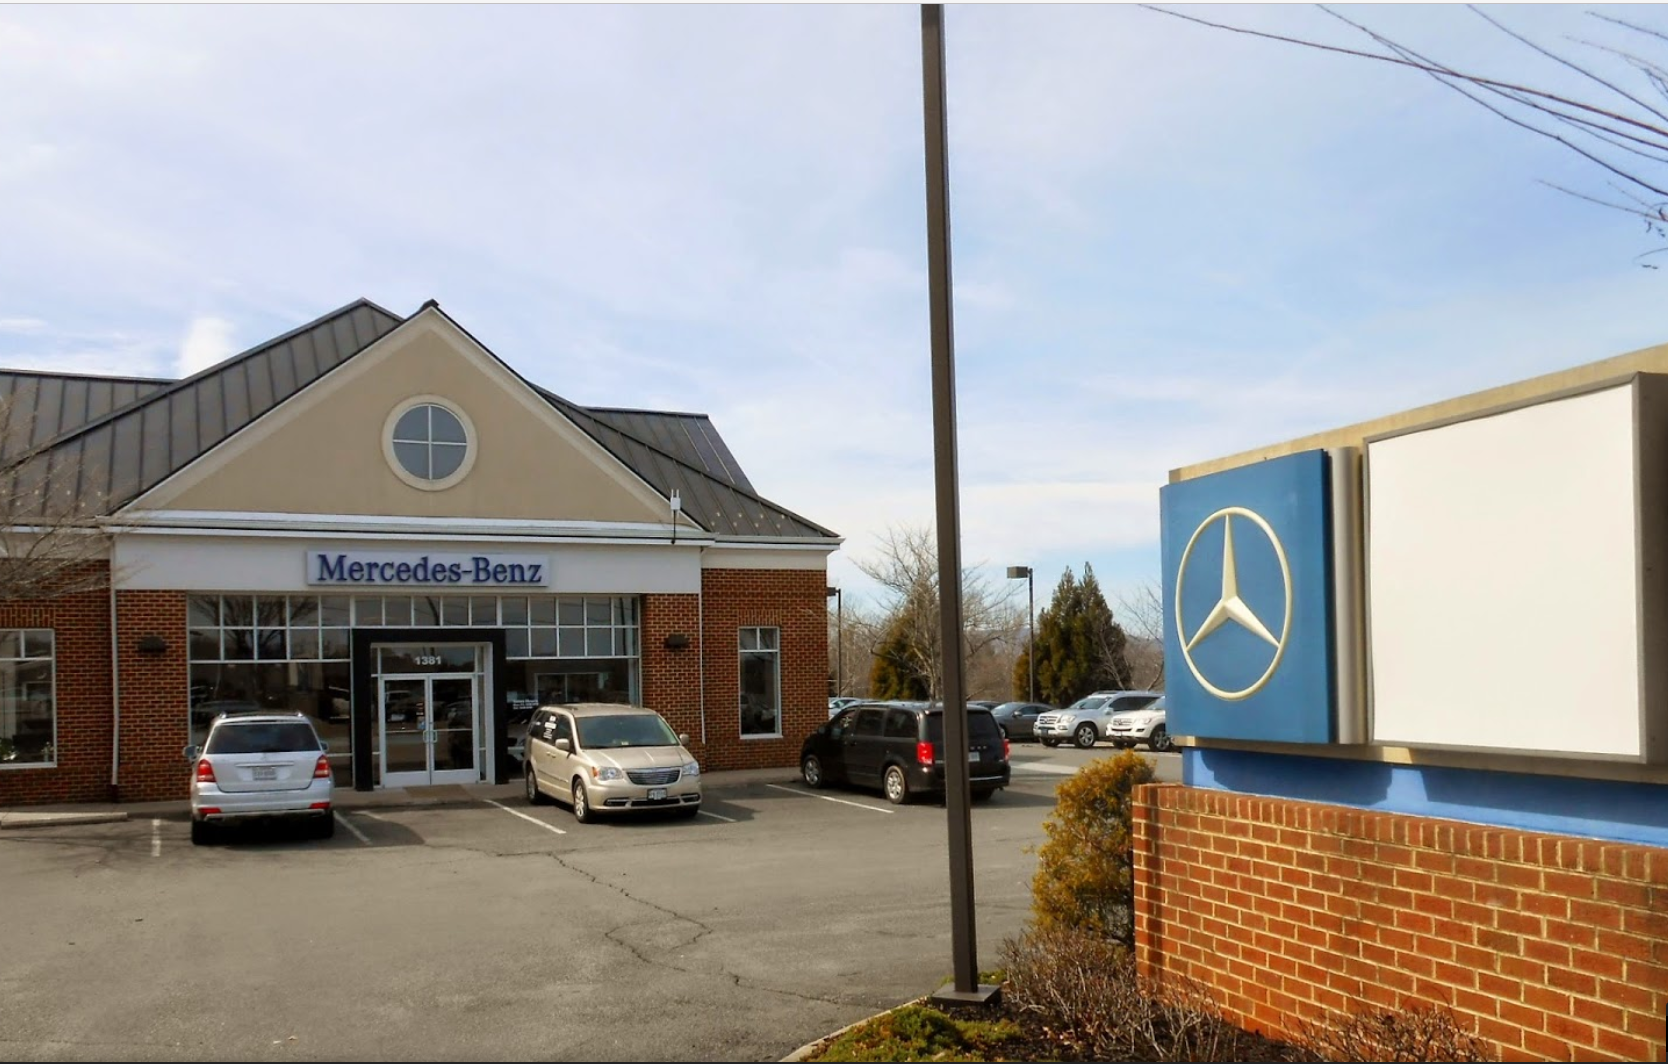 mercedes-benz dealership near me in charlottesville va